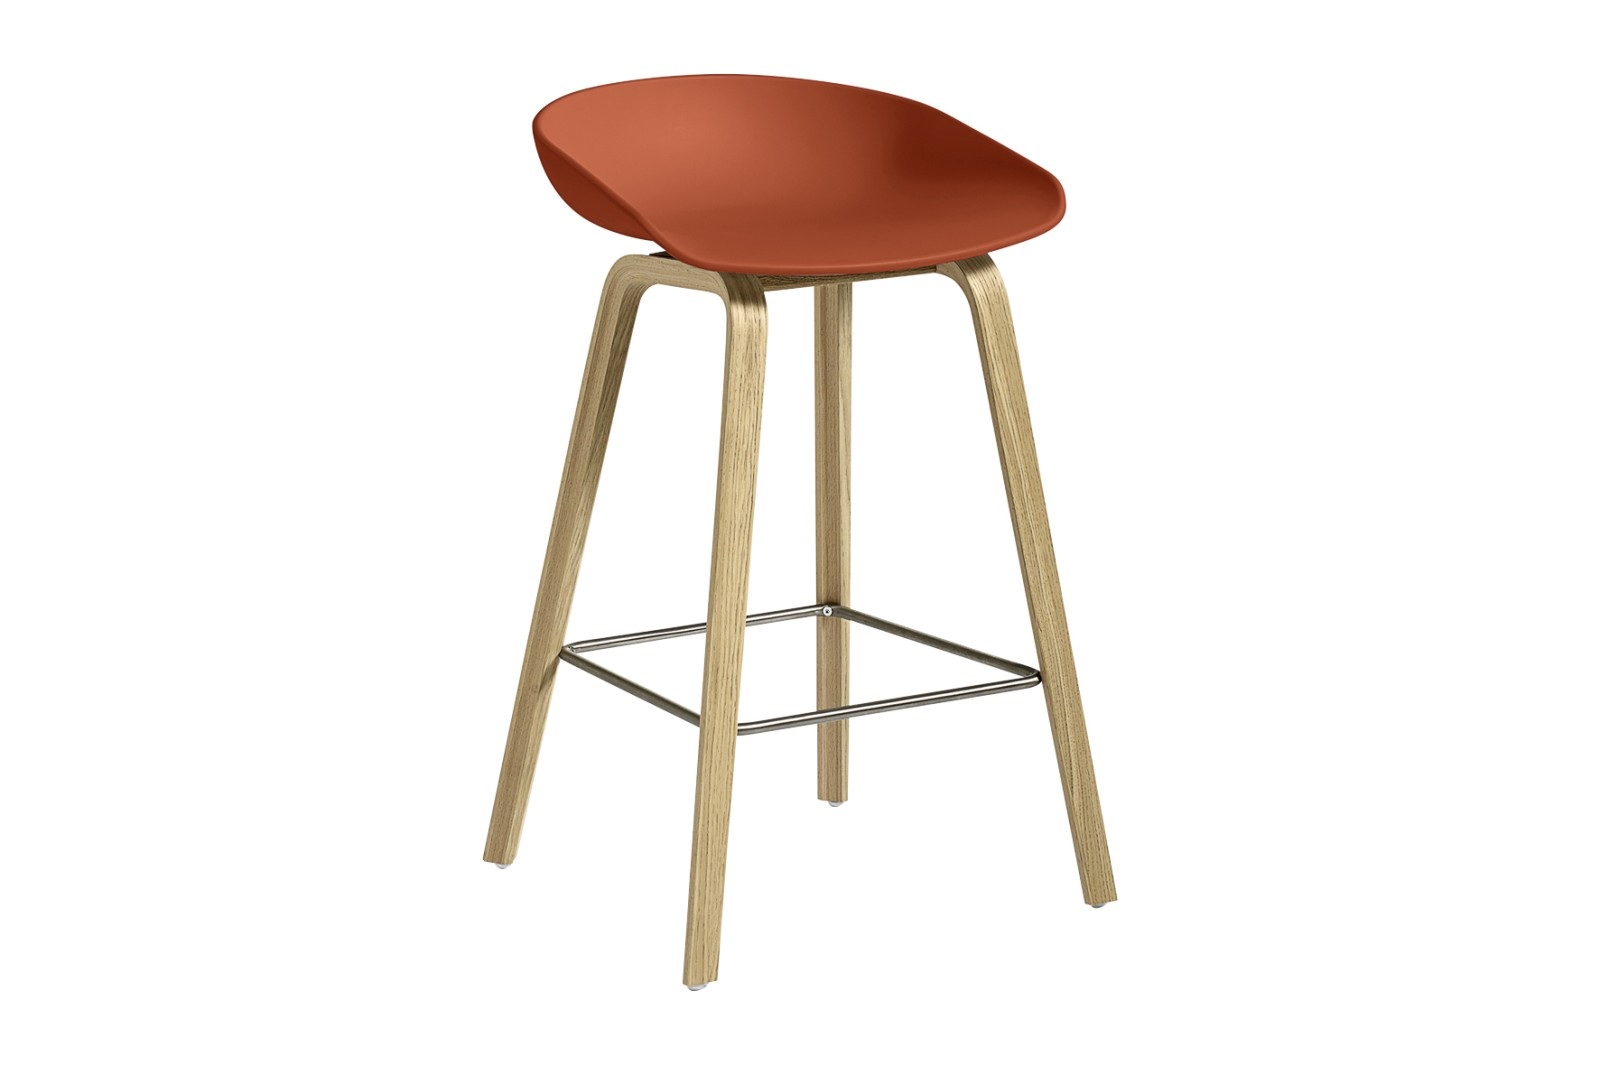 About A Stool AAS32 Clear Lacquered Oak Base, Orange Seat, Low, Stainless Steel